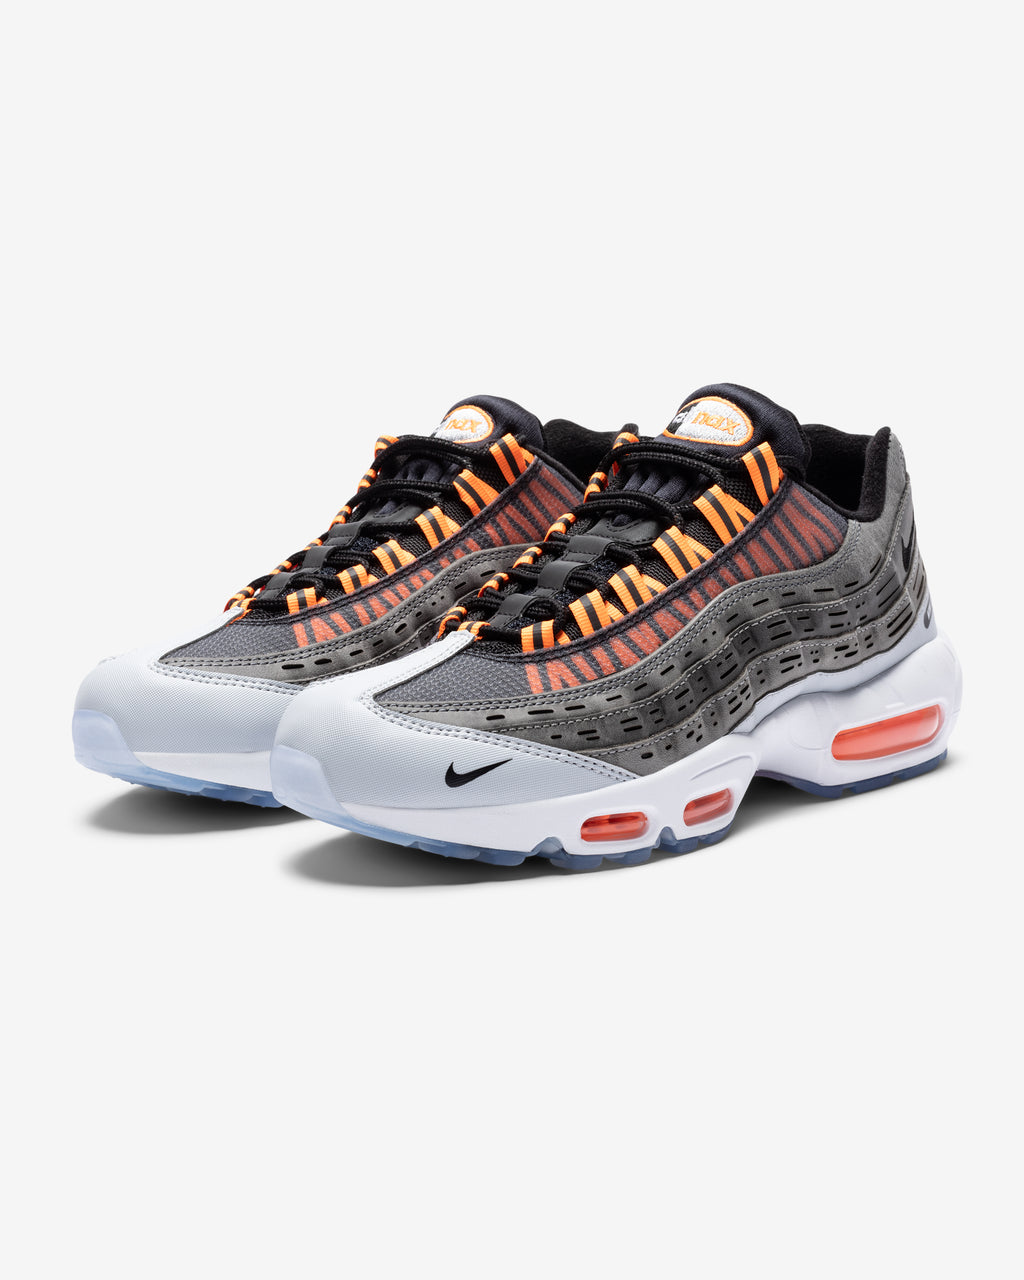 NIKE X KIM JONES AIR MAX 95 - BLACK/ TOTALORANGE/ DARKGREY